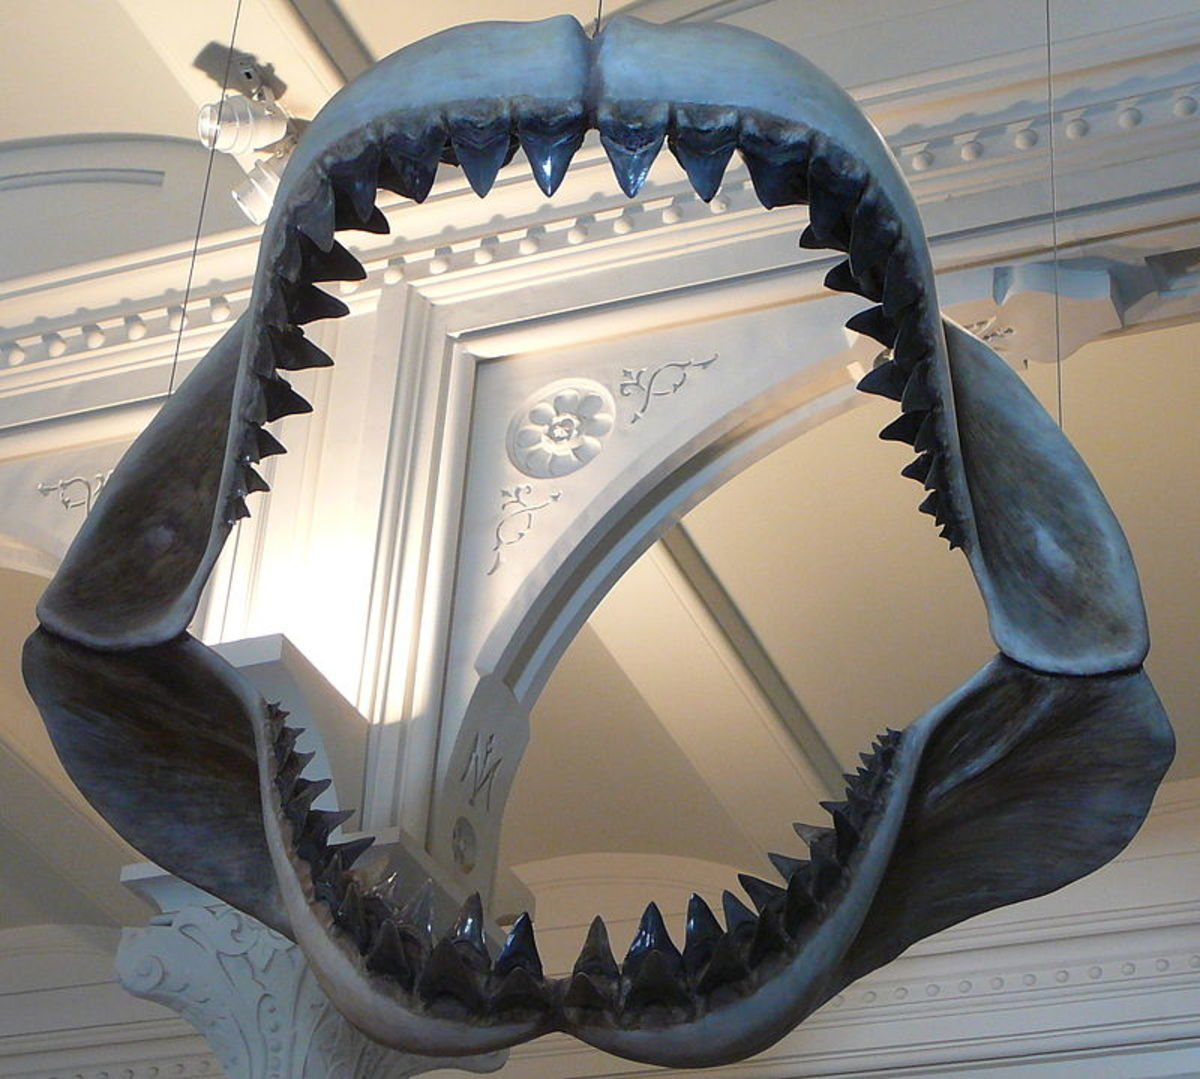 Top 10 Interesting Facts About Megalodon